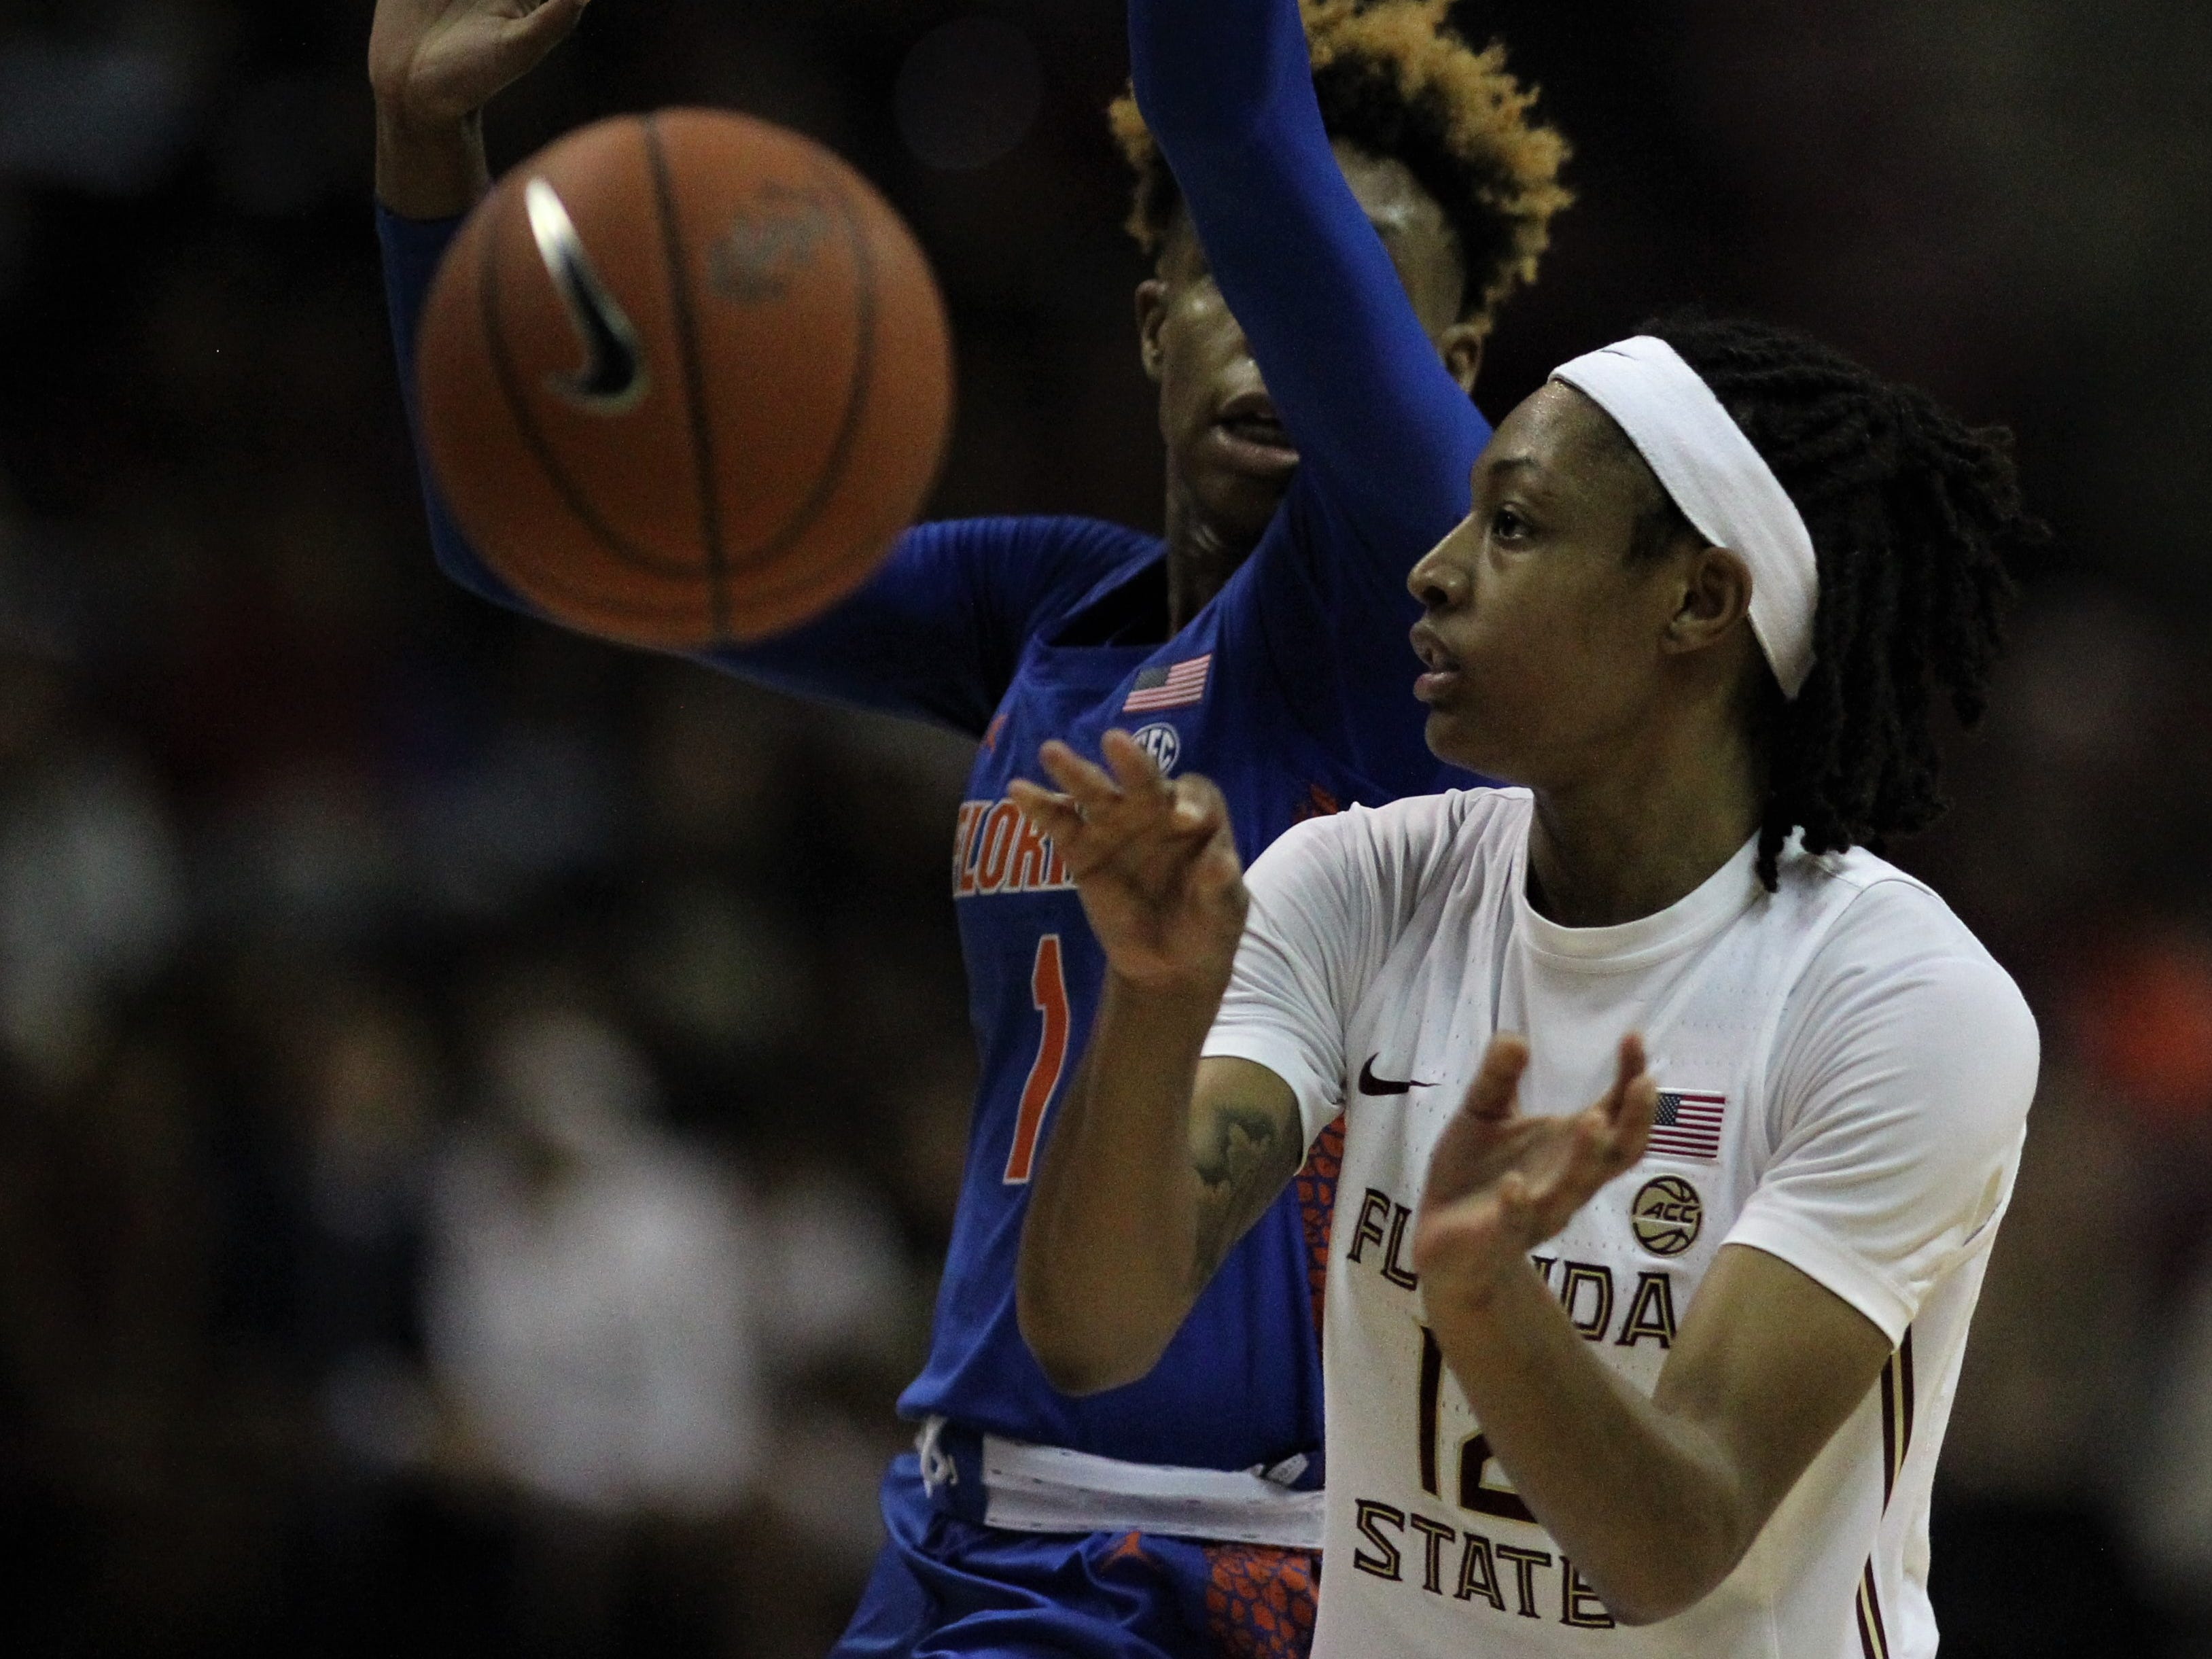 Florida State guard Nicki Ekhomu throws a no-look pass during the first half of the Seminoles' game against Florida at the Tucker Civic Center on Nov. 11, 2018.